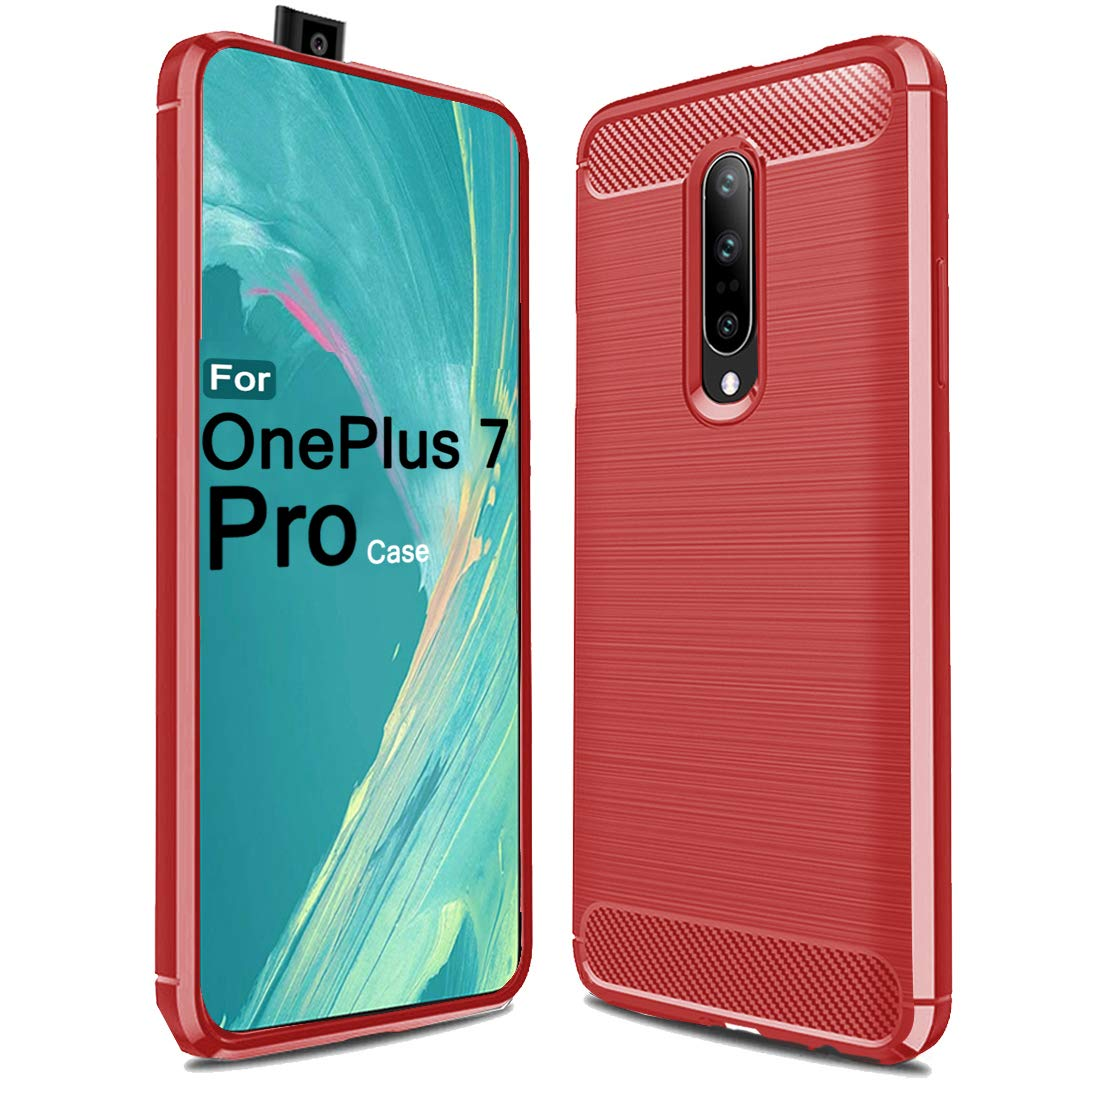 TPU case for OnePlus 7 Pro